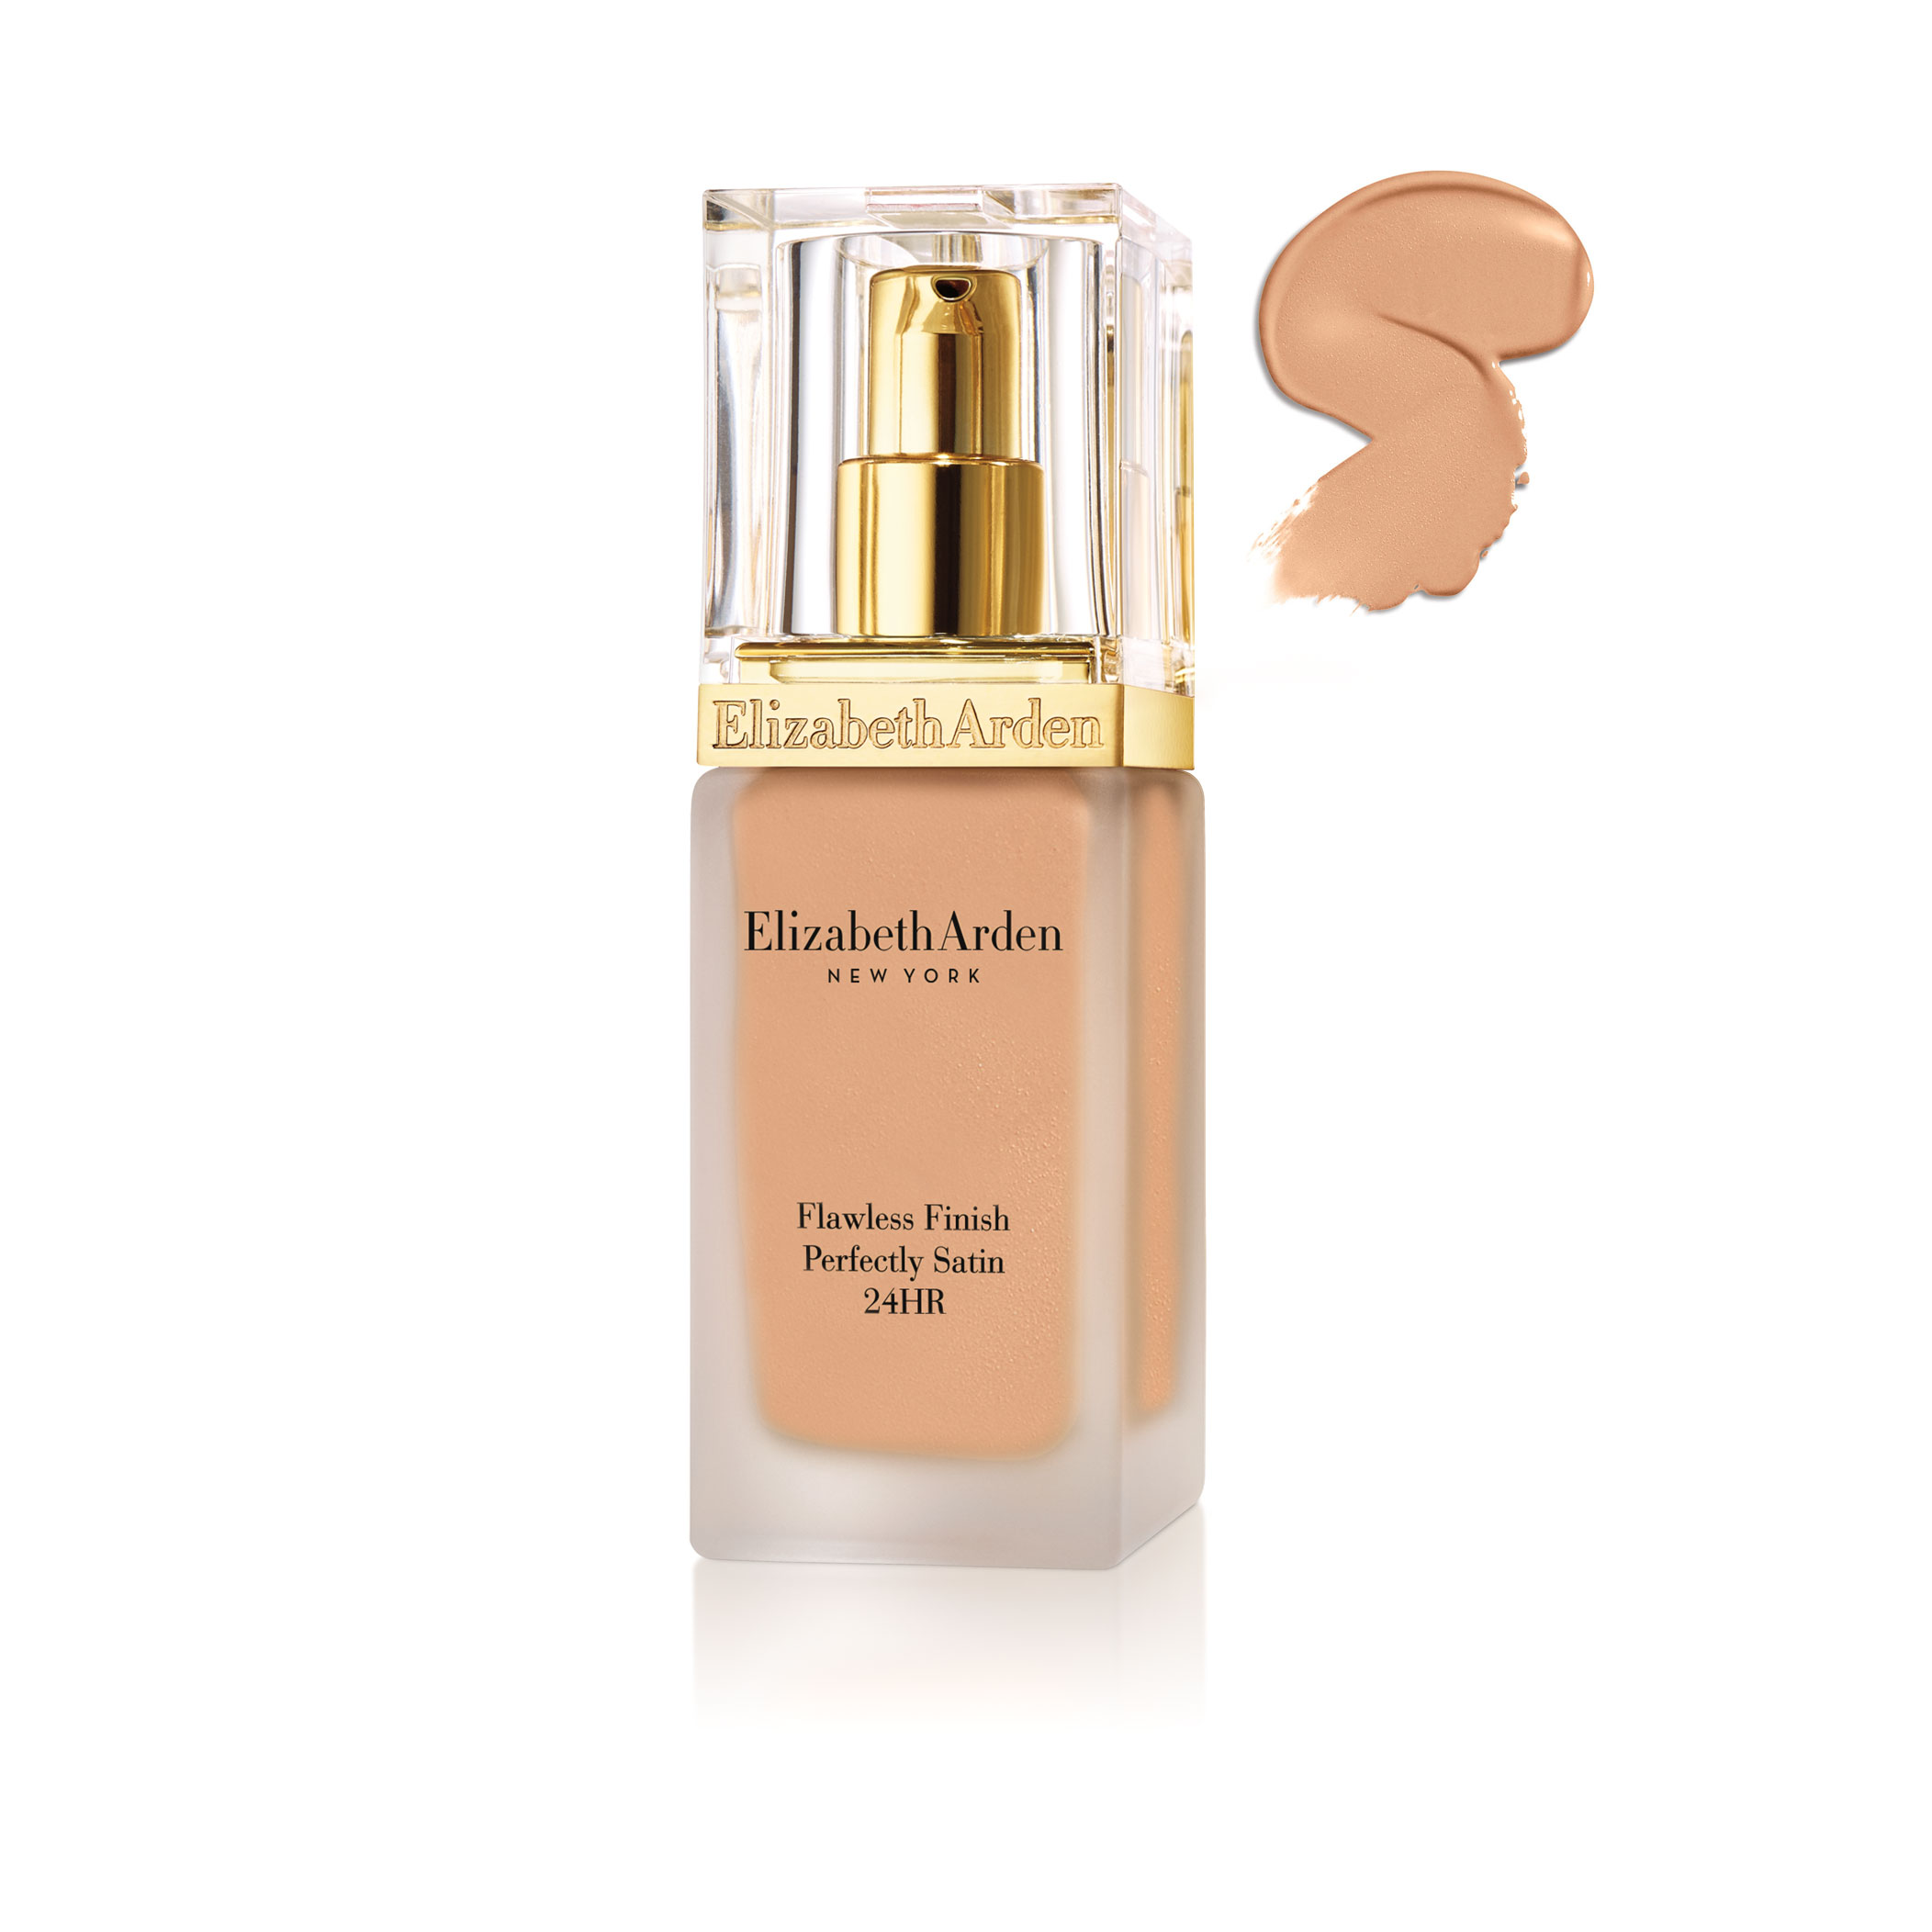 Elizabeth Arden Flawless Finish Perfectly Satin 24hr